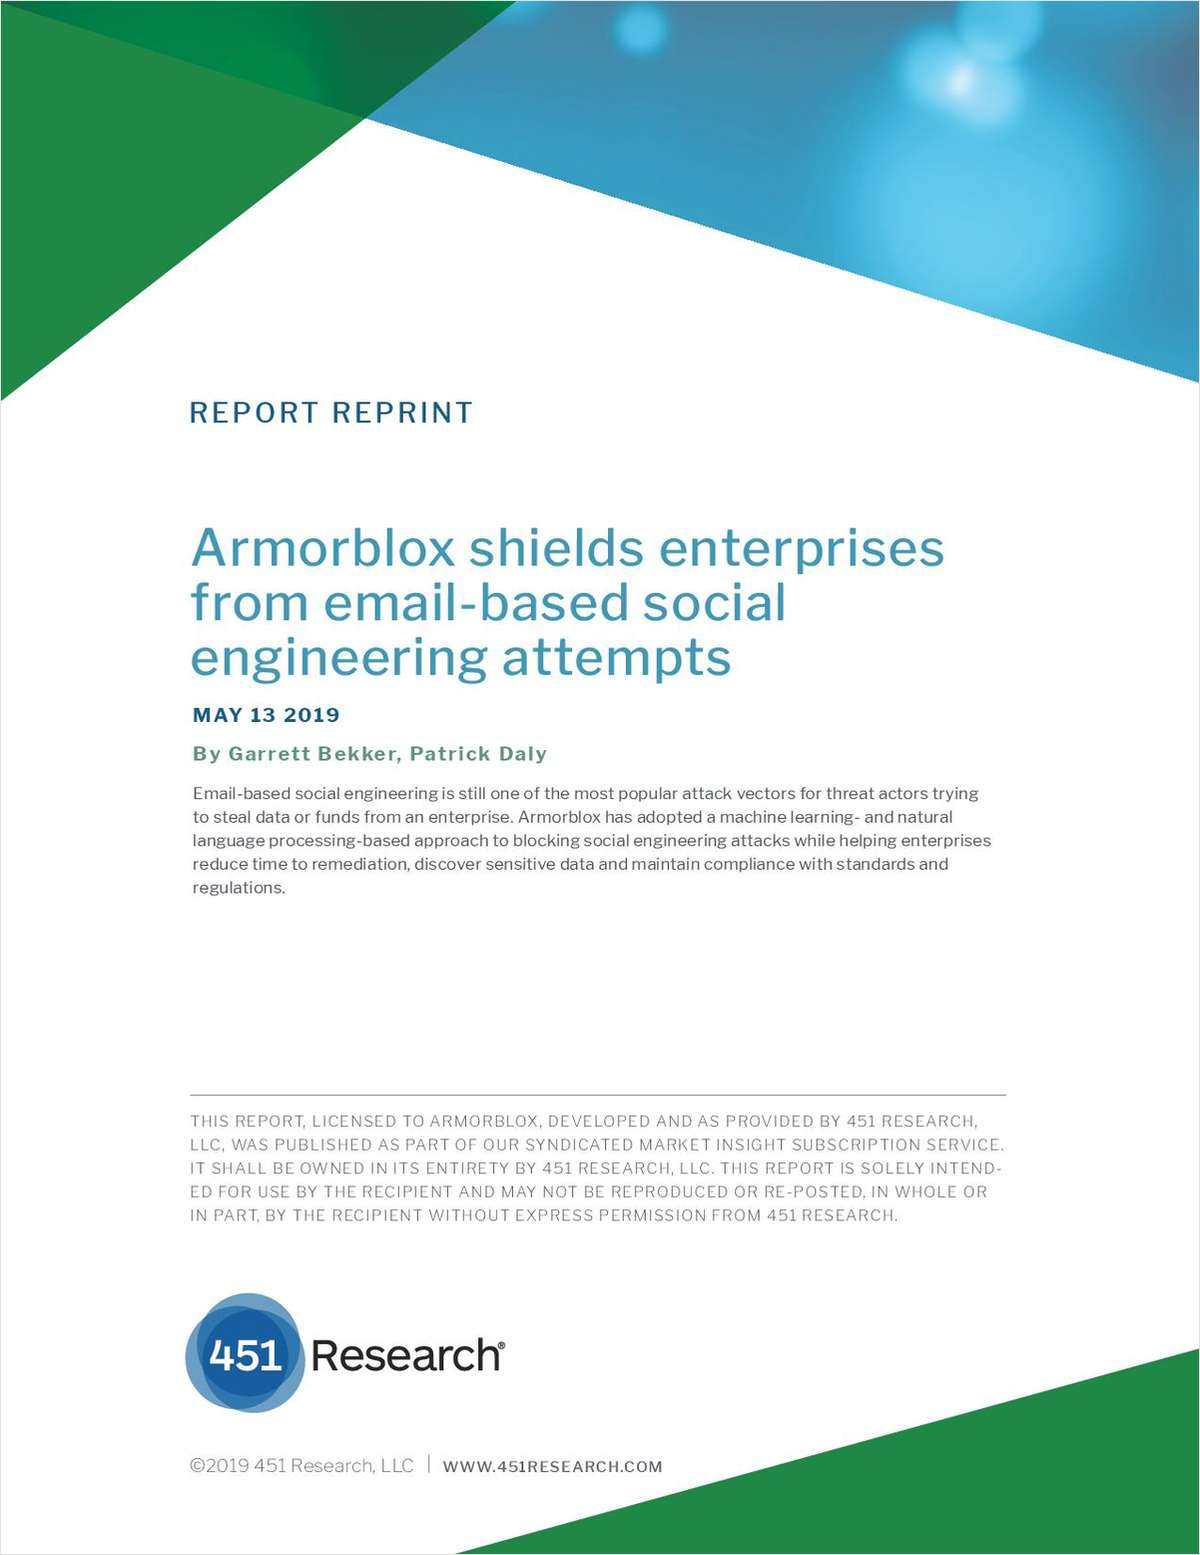 Armorblox Shields Enterprises from Email-based Social Engineering attempts